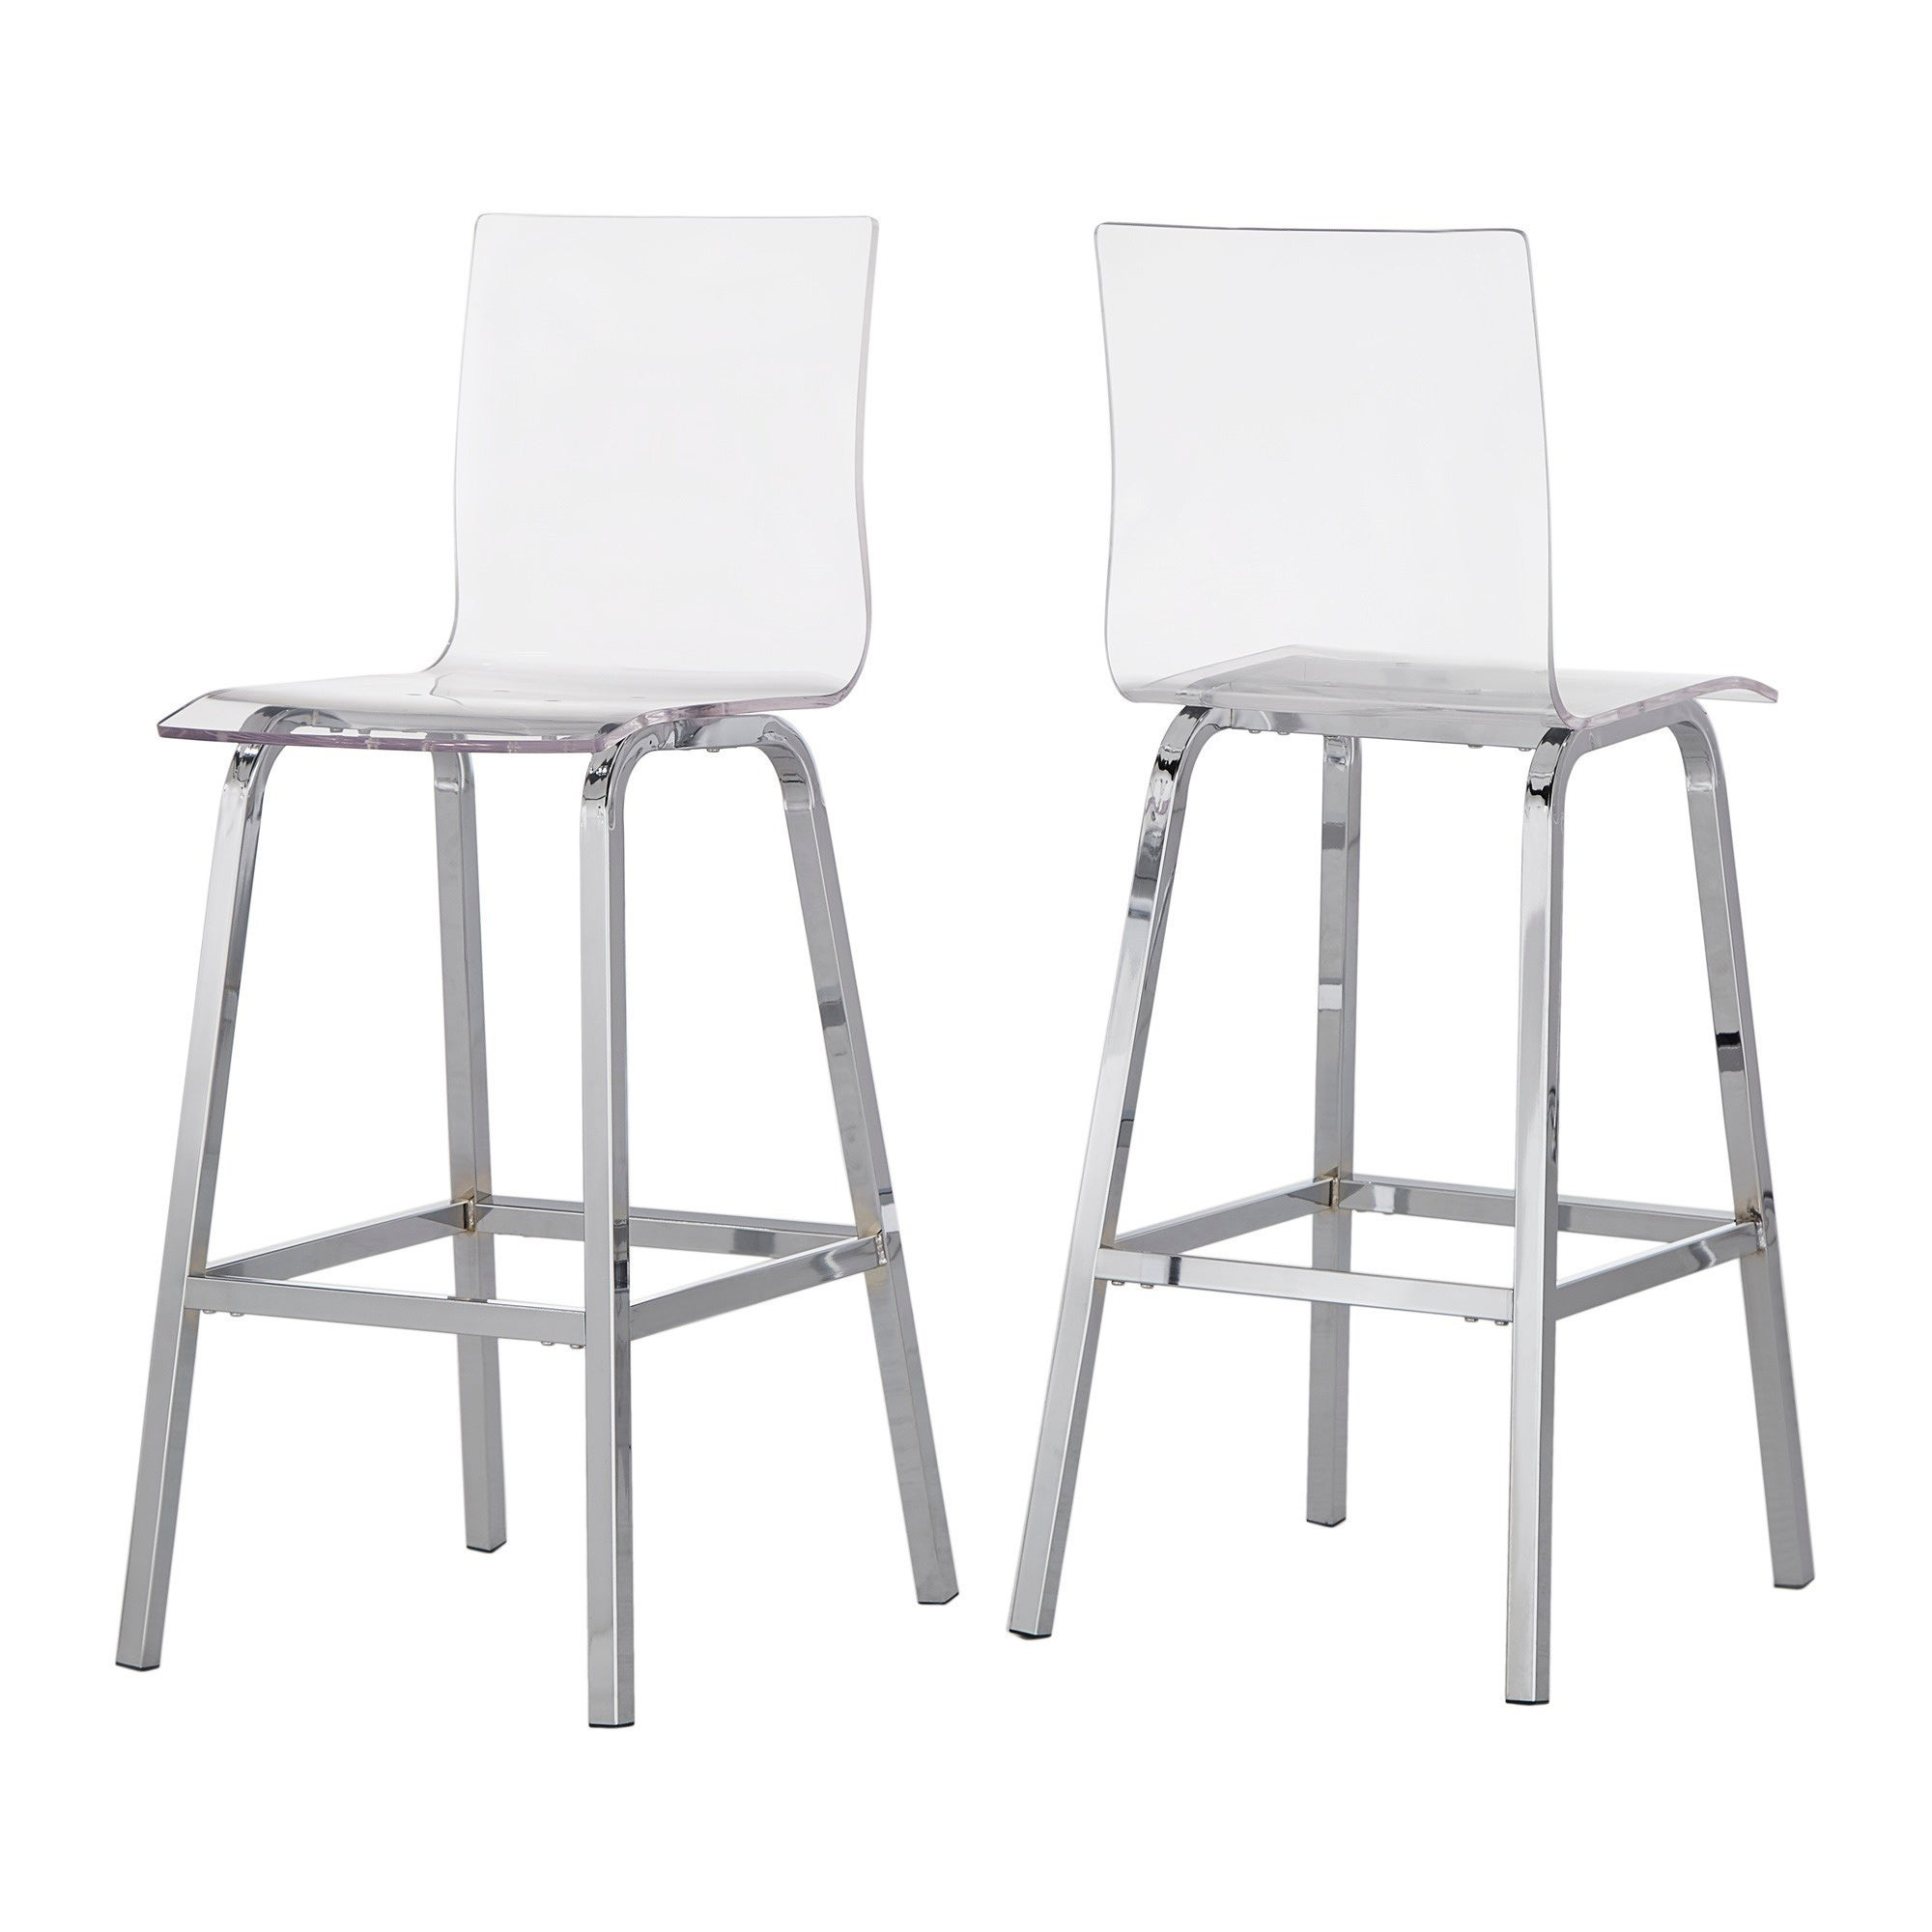 Astonishing Miles Clear Acrylic Swivel High Back Bar Stools With Back Set Of 2 By Inspire Q Bold Machost Co Dining Chair Design Ideas Machostcouk